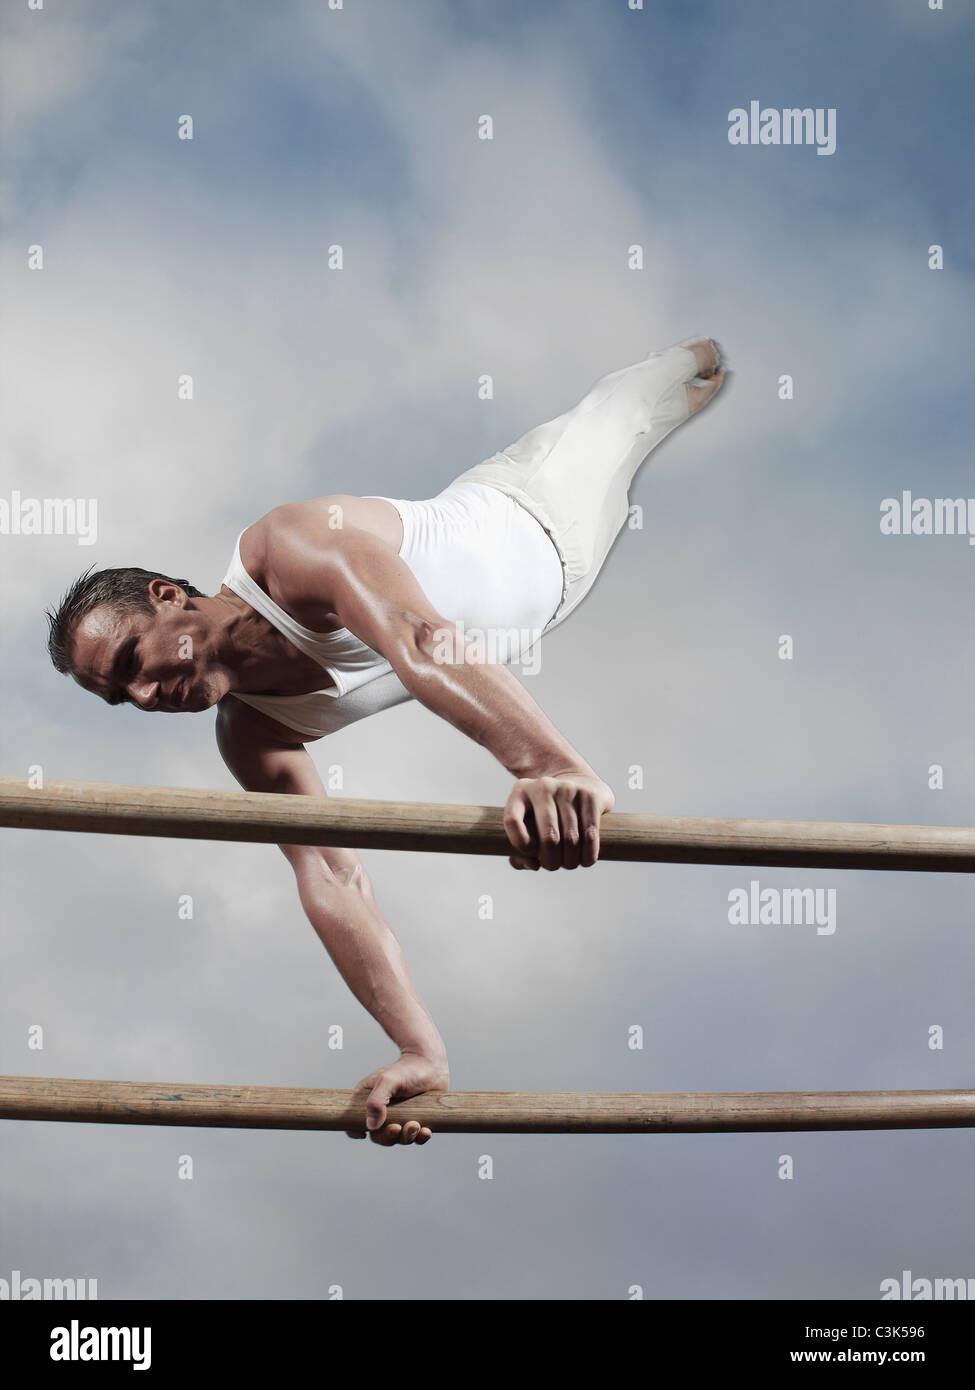 Germany, Augsburg, Young man balancing on parallel bars - Stock Image